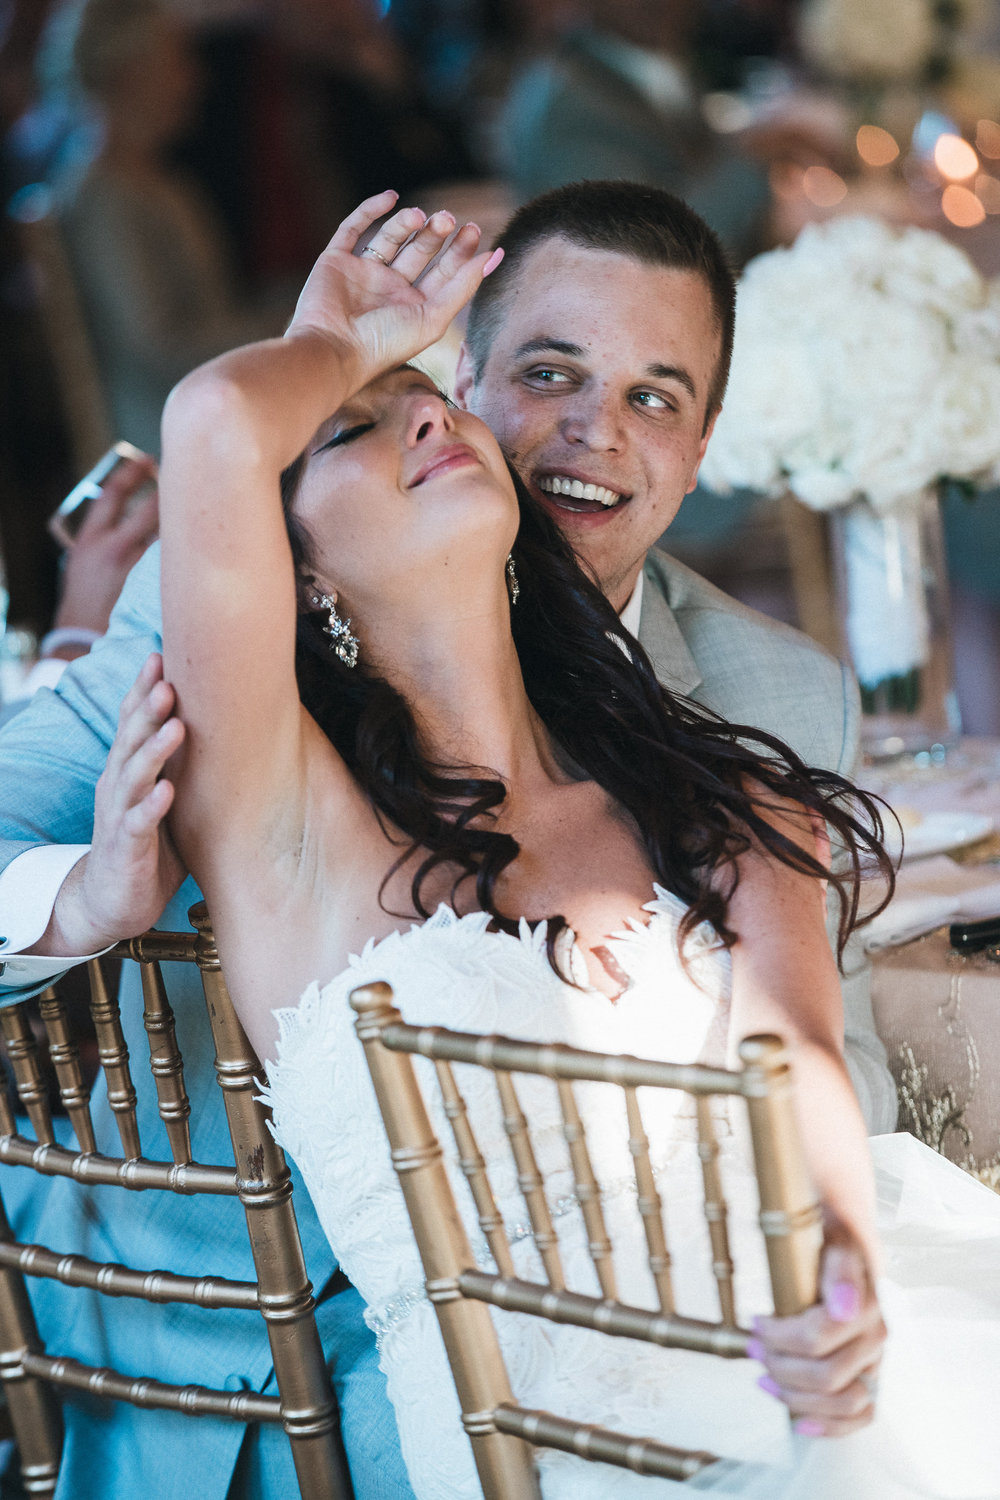 Robb McCormick Photography - Wedding Photographer (79 of 128).jpg